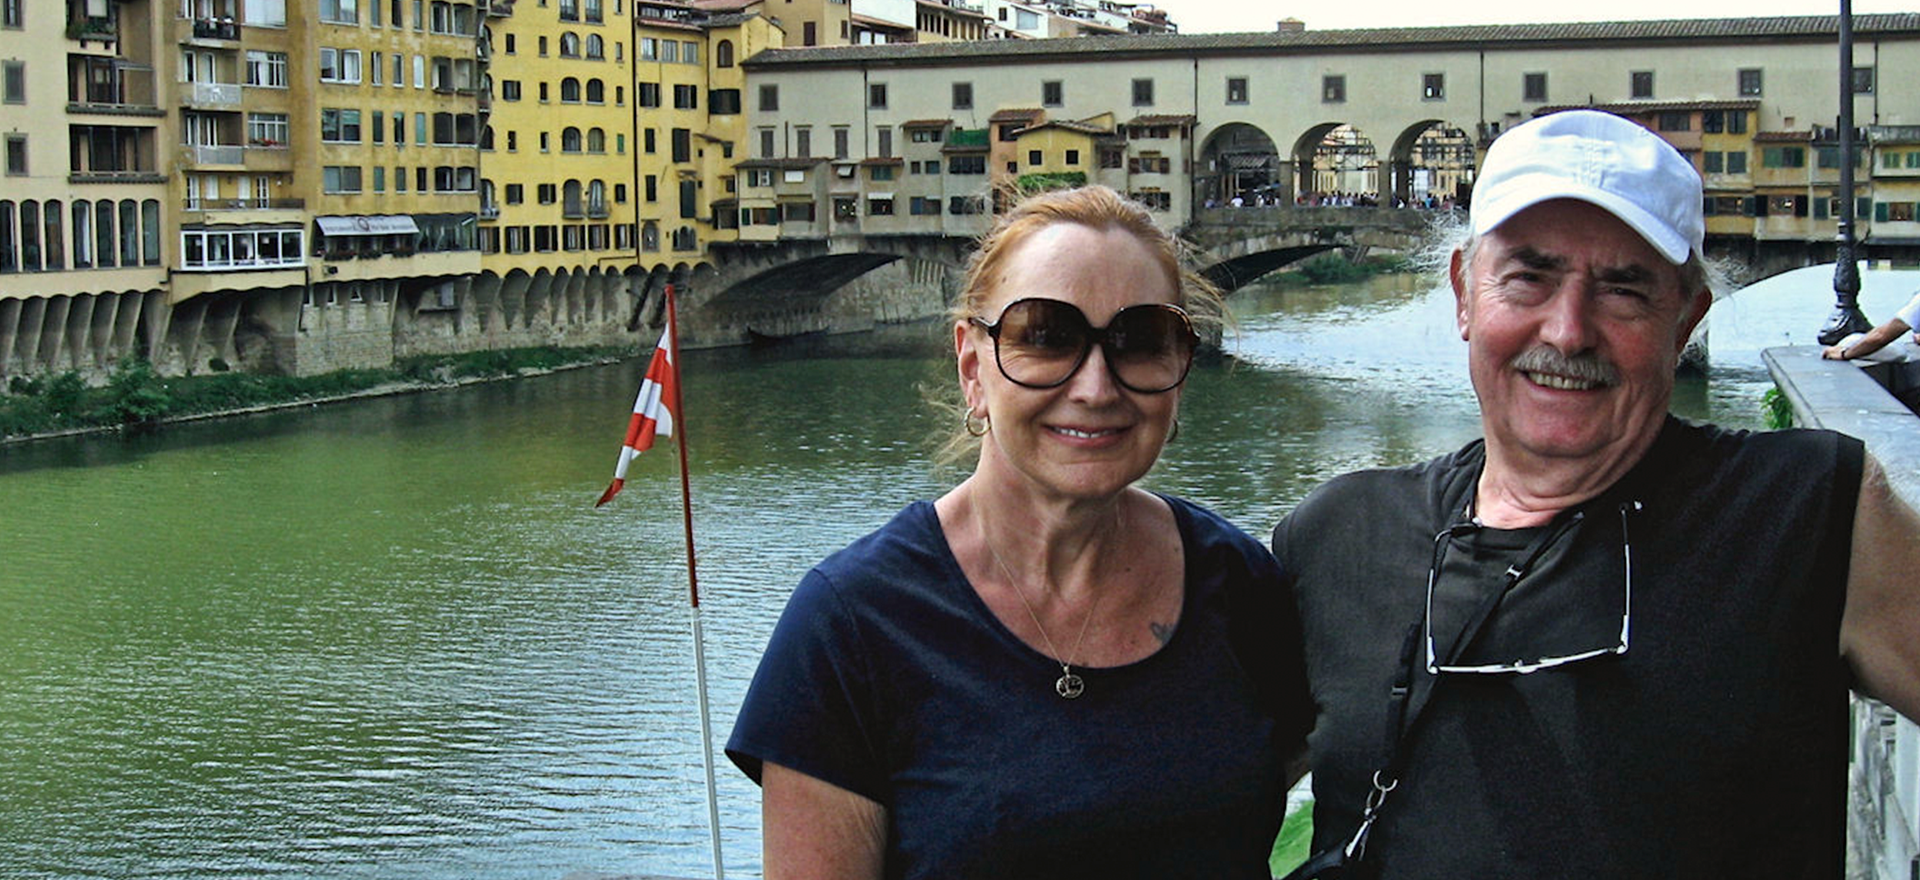 Murray and Linda Smith by a river in Ponte Vicchio